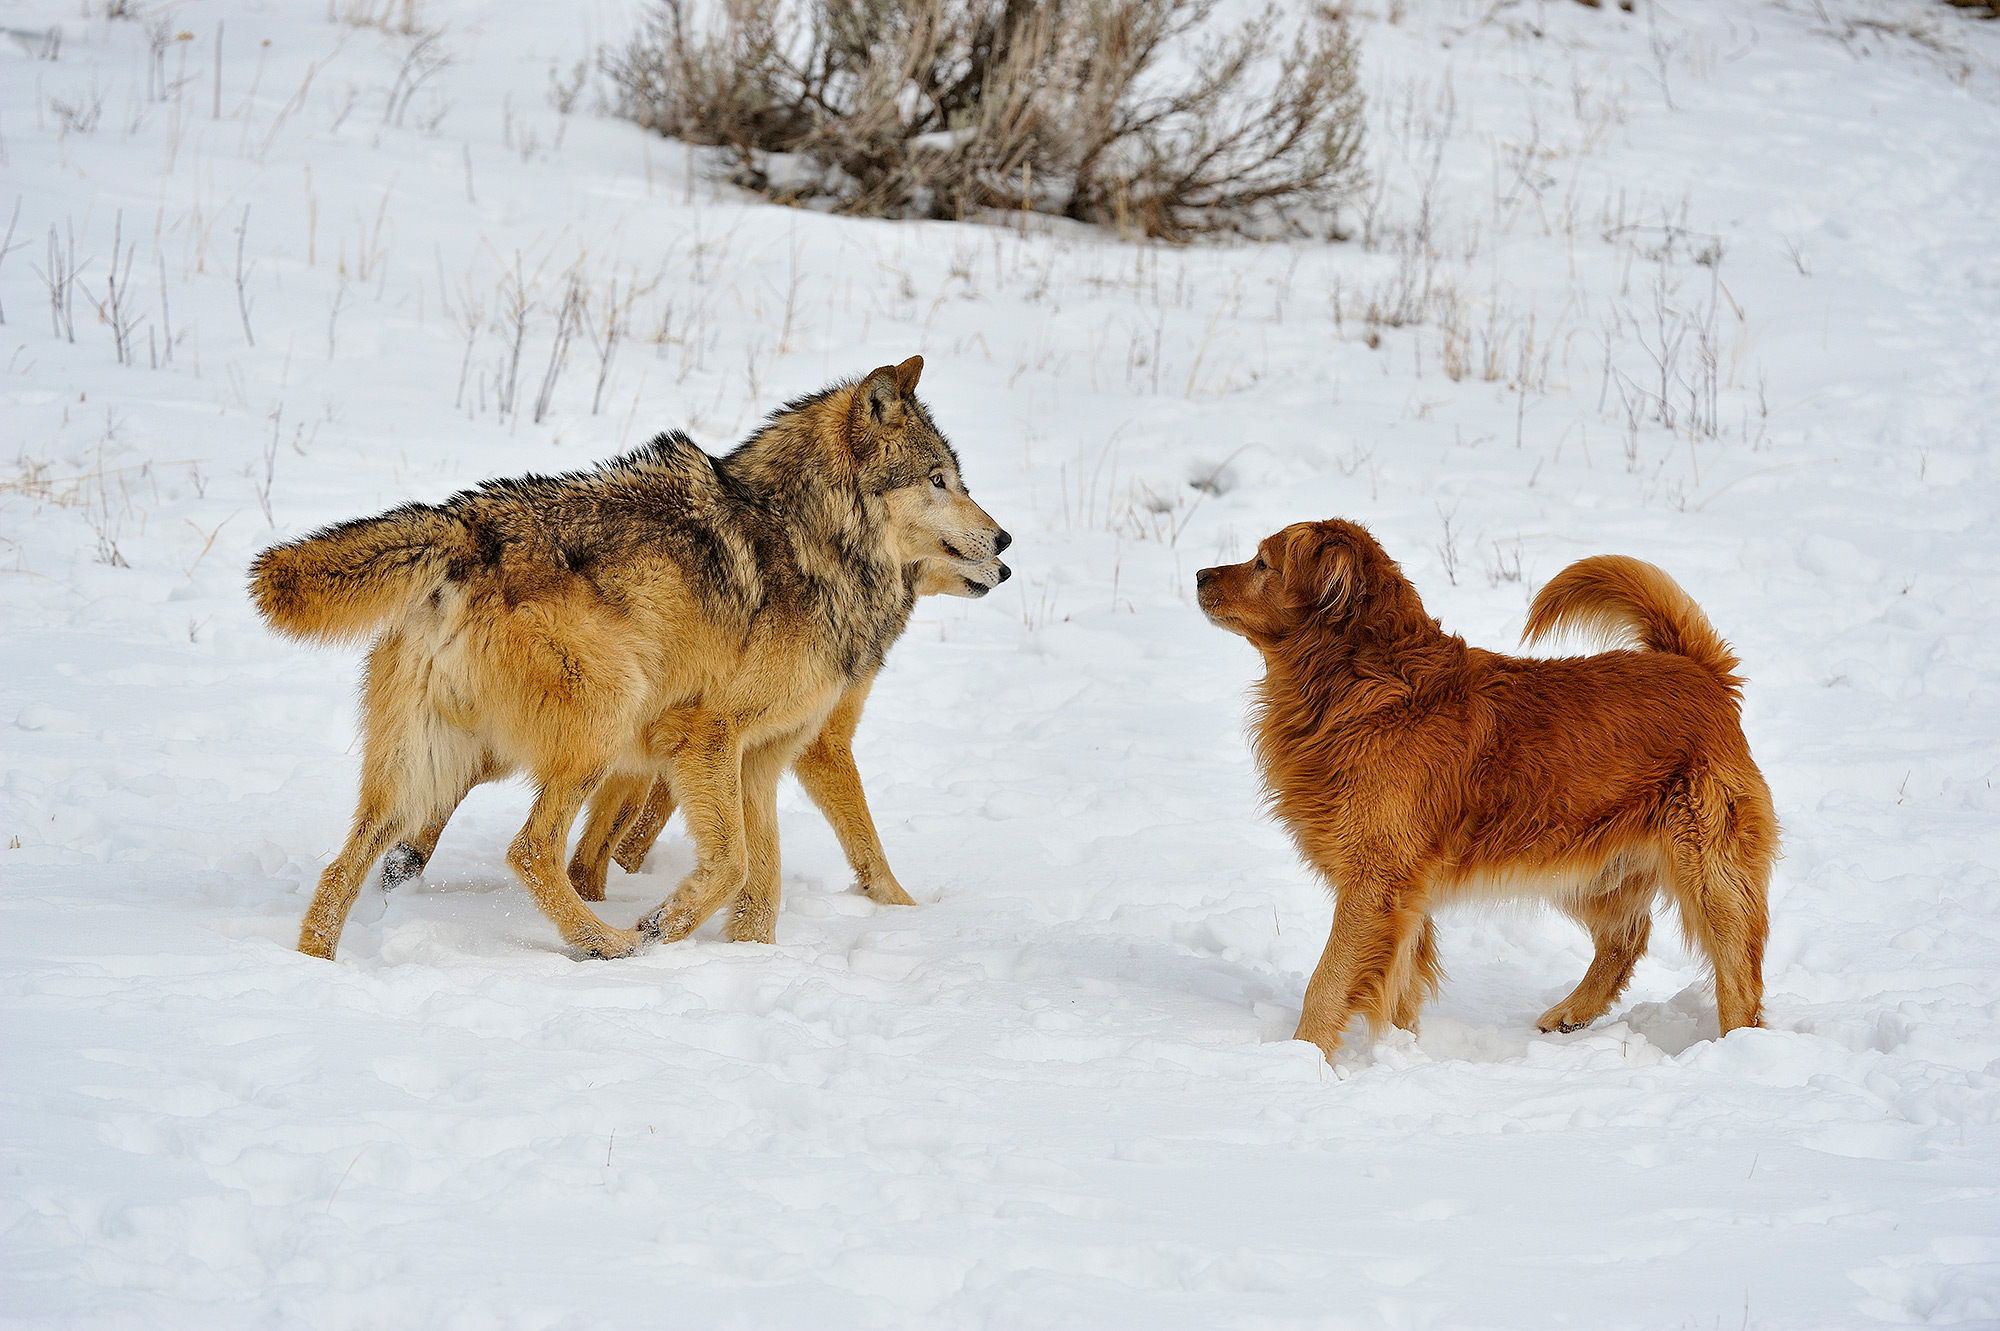 Gray wolf, Canis lupus, interacting with domestic dog Golden retriever, Canis familiaris, Bozeman, Montana, USA